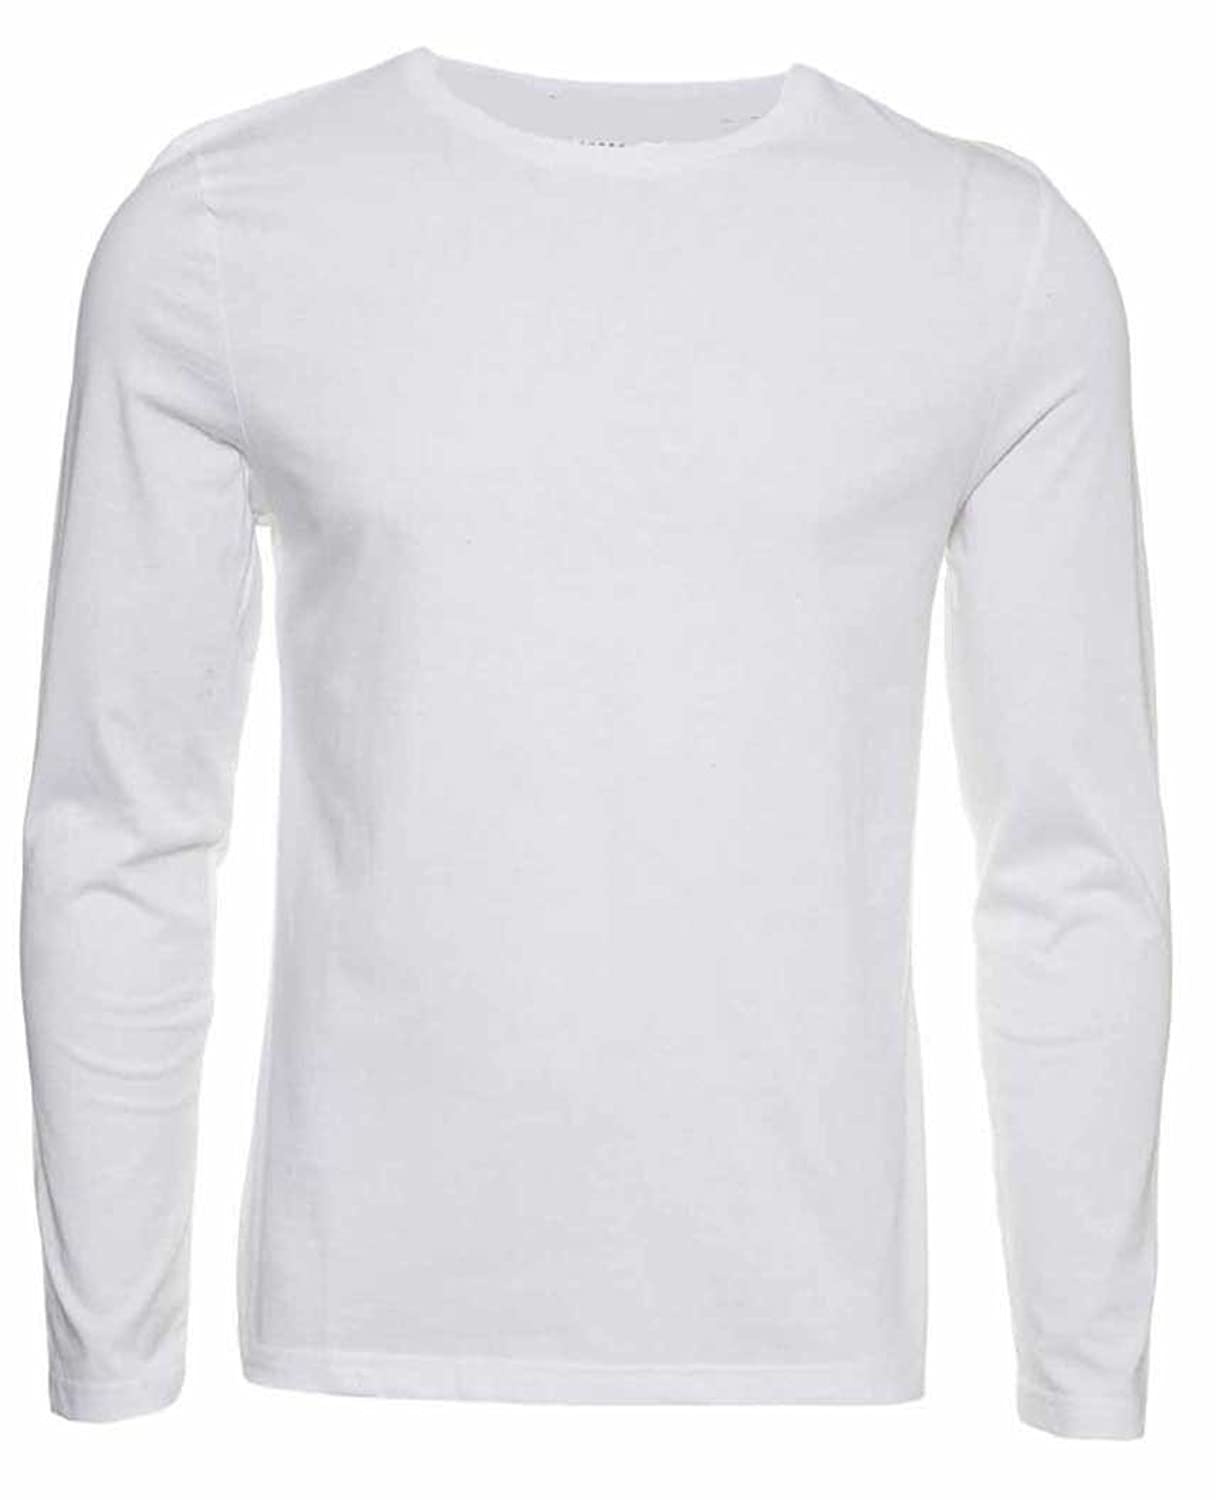 mens long sleeve white tee shirts custom shirt